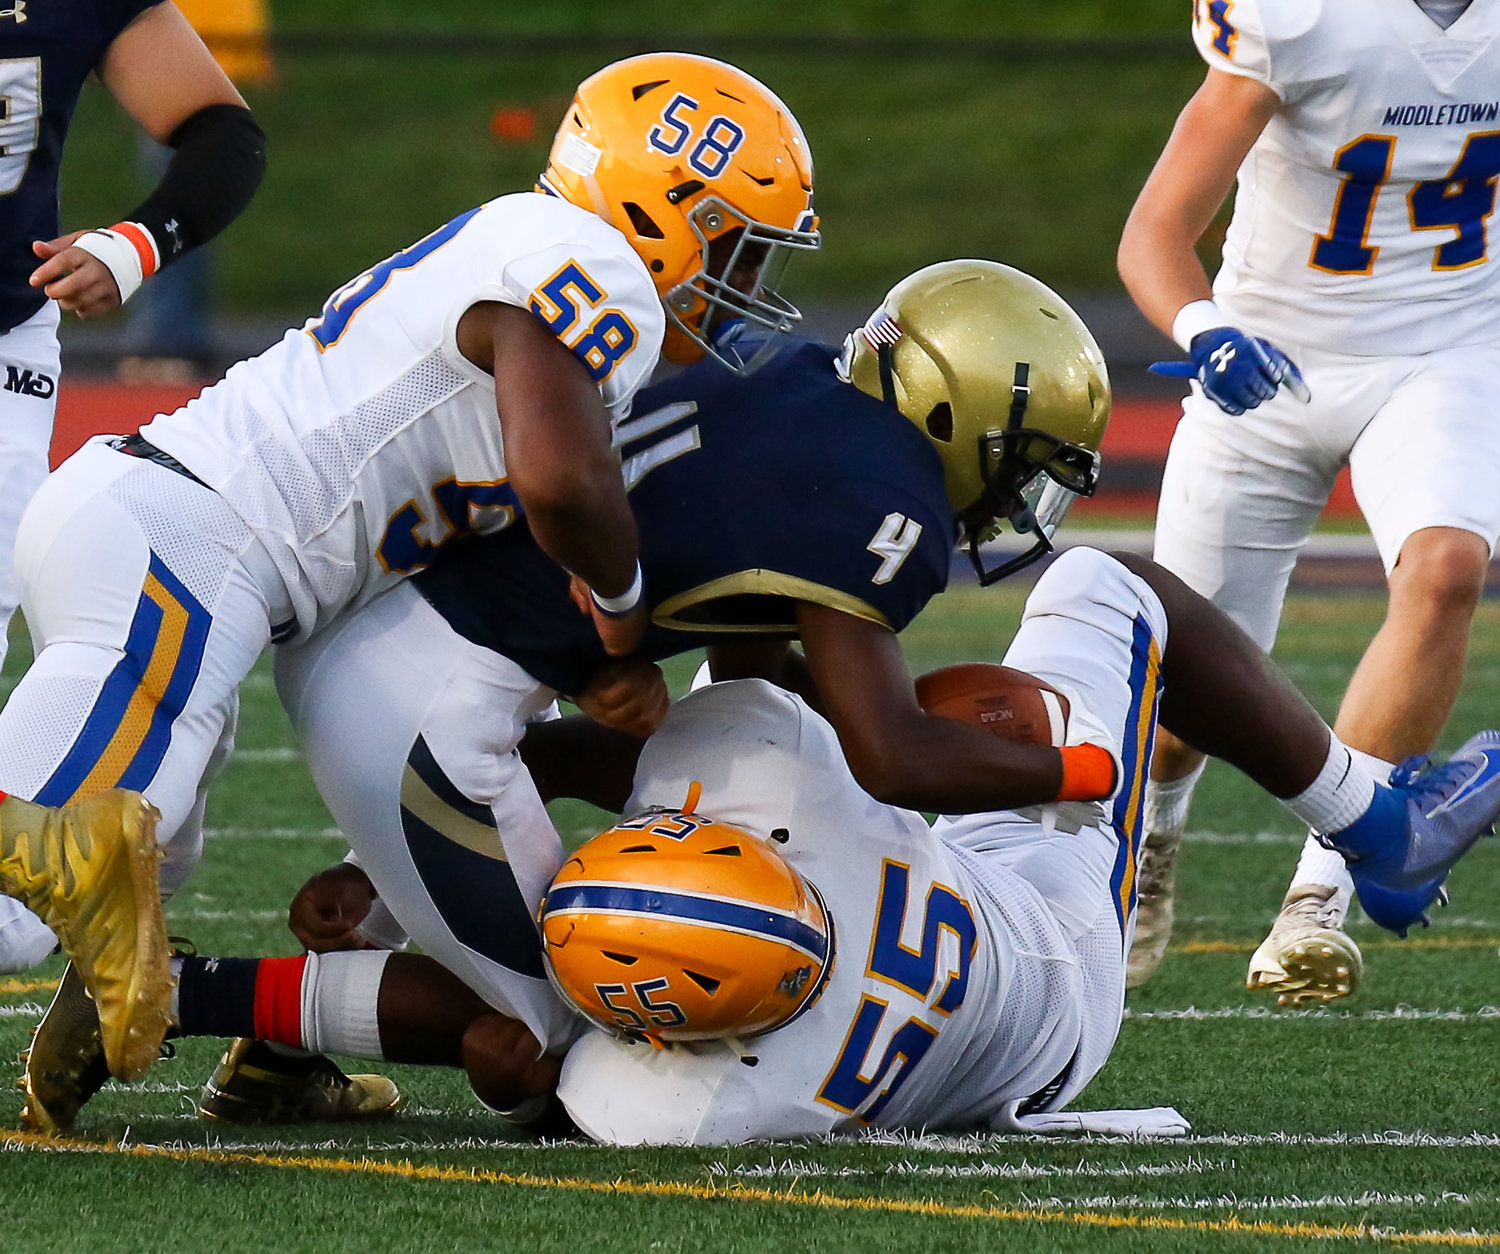 No. 58 Arthur Dash and No. 55 Jeremy Wells tackle the Bishop McDevitt ball carrier Sept. 6 in the Blue Raiders 6-2 win.